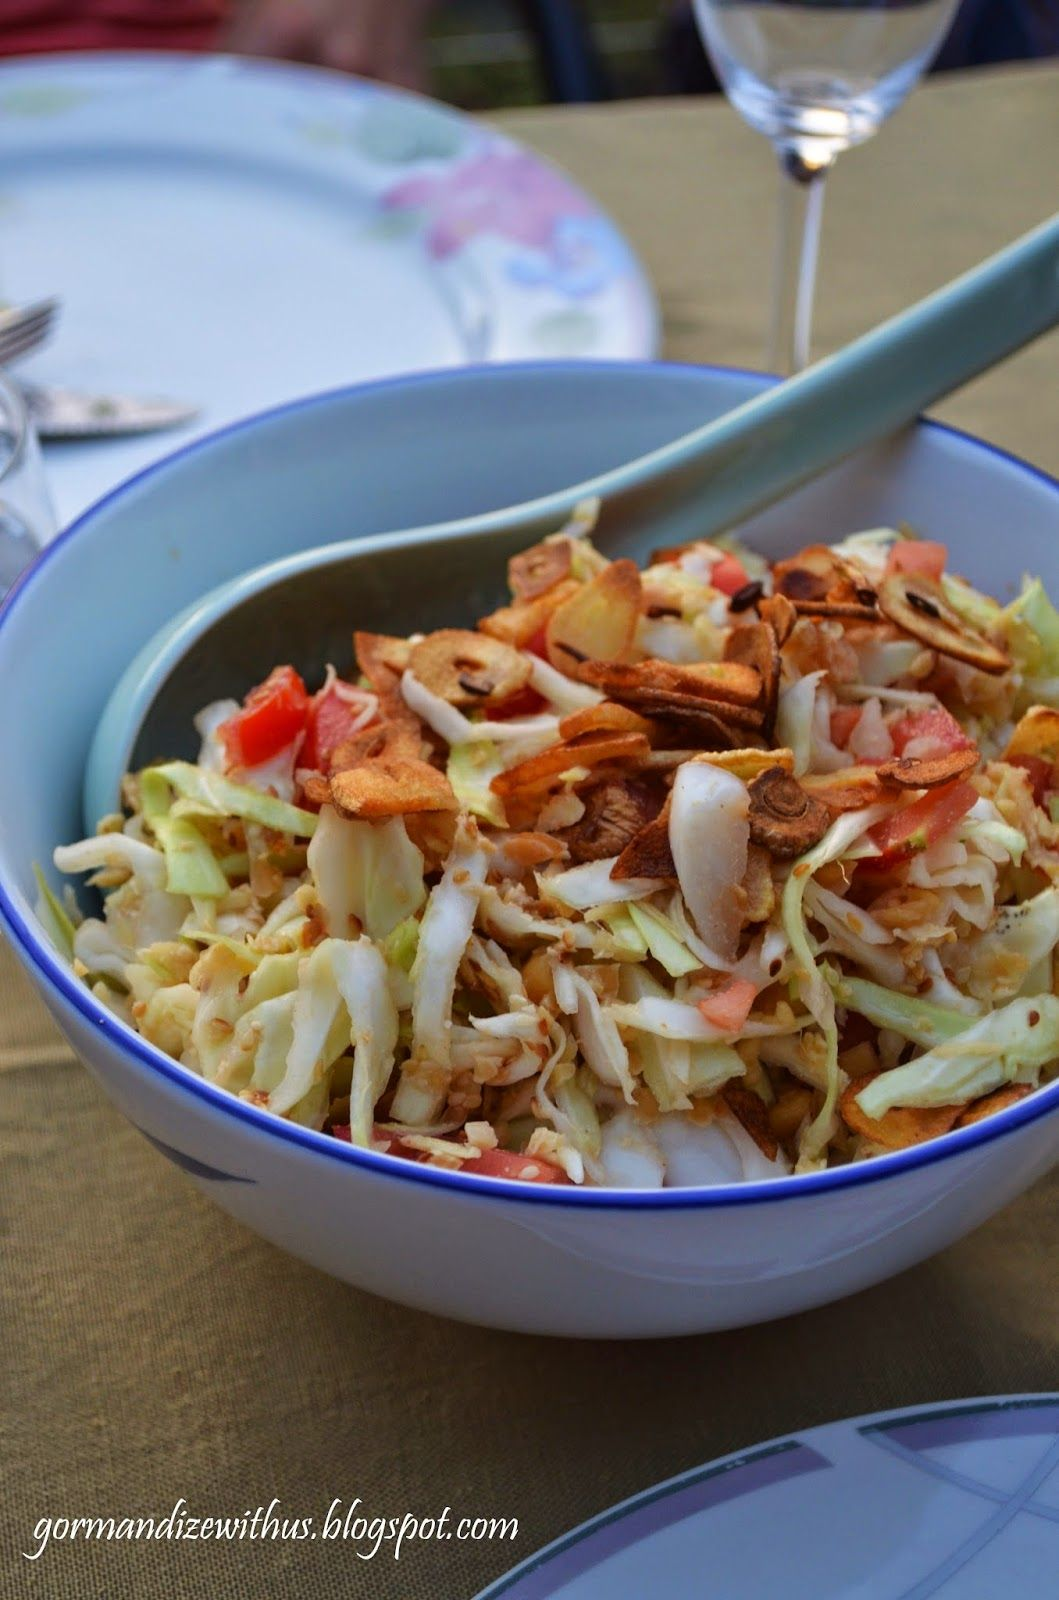 I came onto the blog today thinking to share another great burmese food forumfinder Gallery